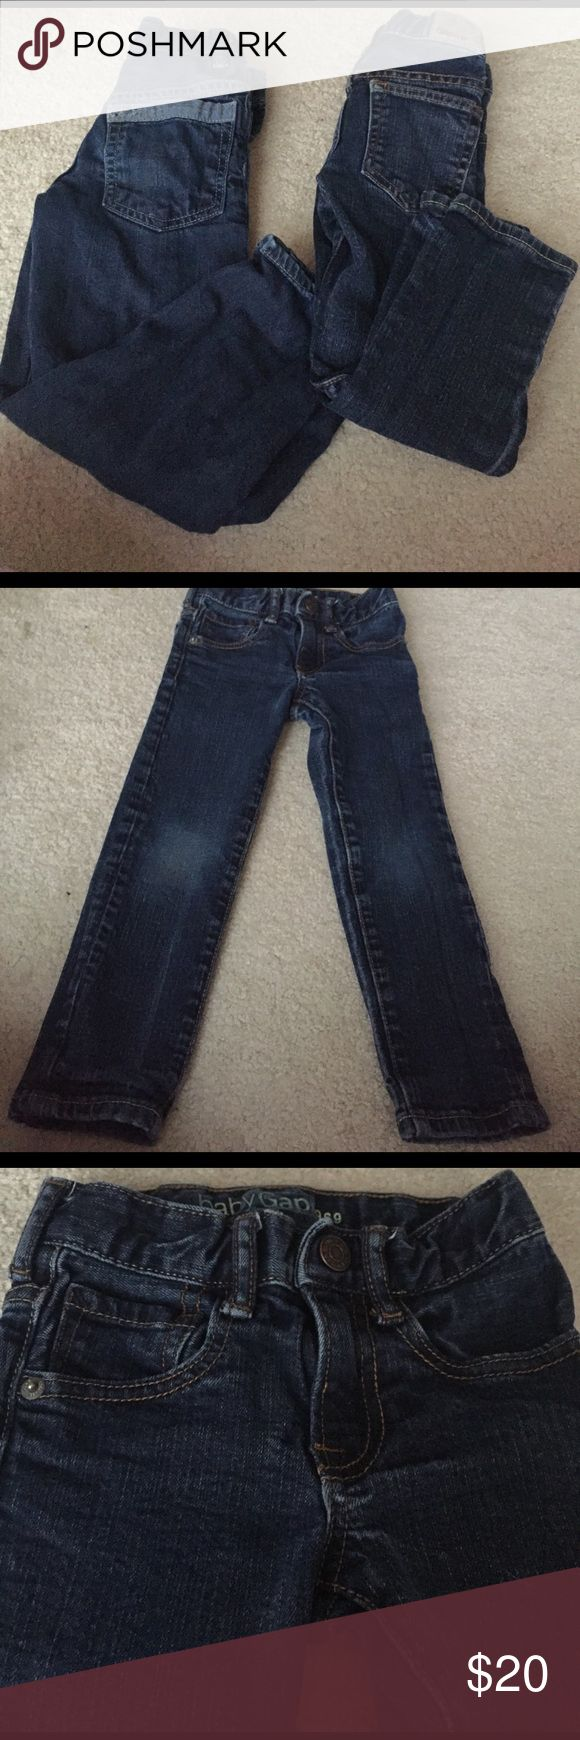 Baby Gap size 4 skinny and 2 toned pocket jeans. Baby Gap size 4 skinny and 2 toned pocket jeans.  I believed the 2 toned pocket jeans are relaxed fit, but it doesn't say on them. They are soft and comfy though. My son loved them. The skinnies are great for slender boys. Baby Gap Bottoms Jeans